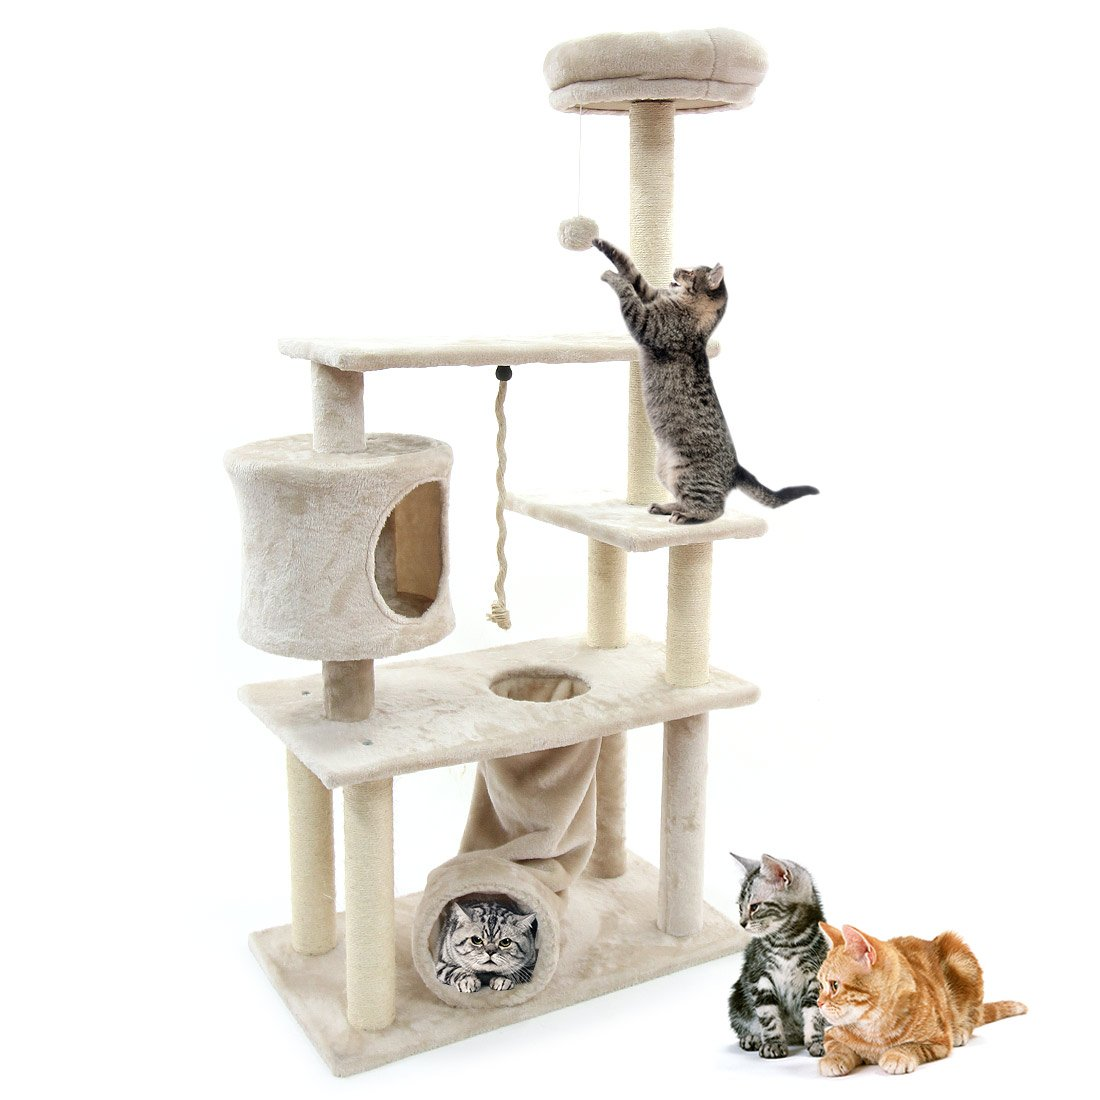 CUPETS Cat Tree Furniture Condo Multi-Level Play House Pet Products—With Play Toys & Scratching Posts